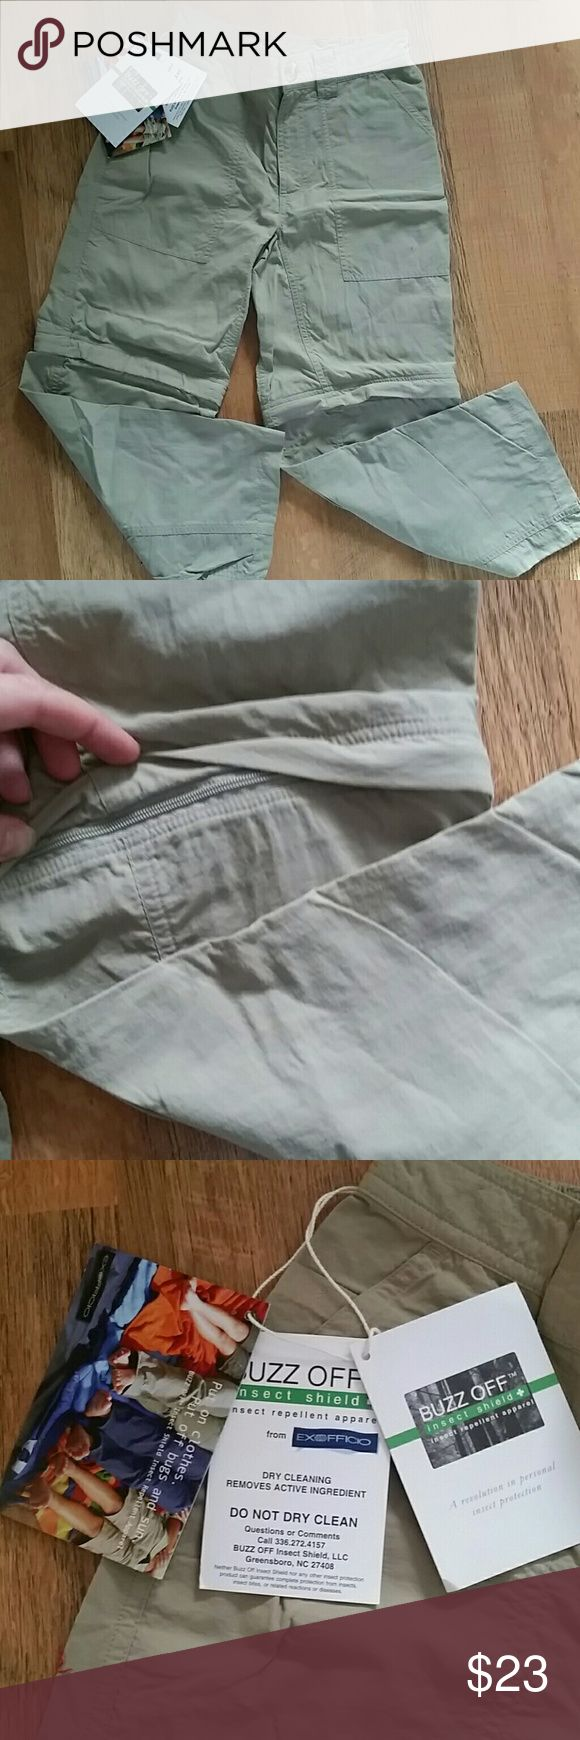 NWT Buzz off pants/shorts Taupe colored pants have Buzz Off repellent in them. 2 pockets front, 2 w velcro in back. Pants zip off into shorts. Button and zip enclosure in front. Thin material. exefficio Bottoms